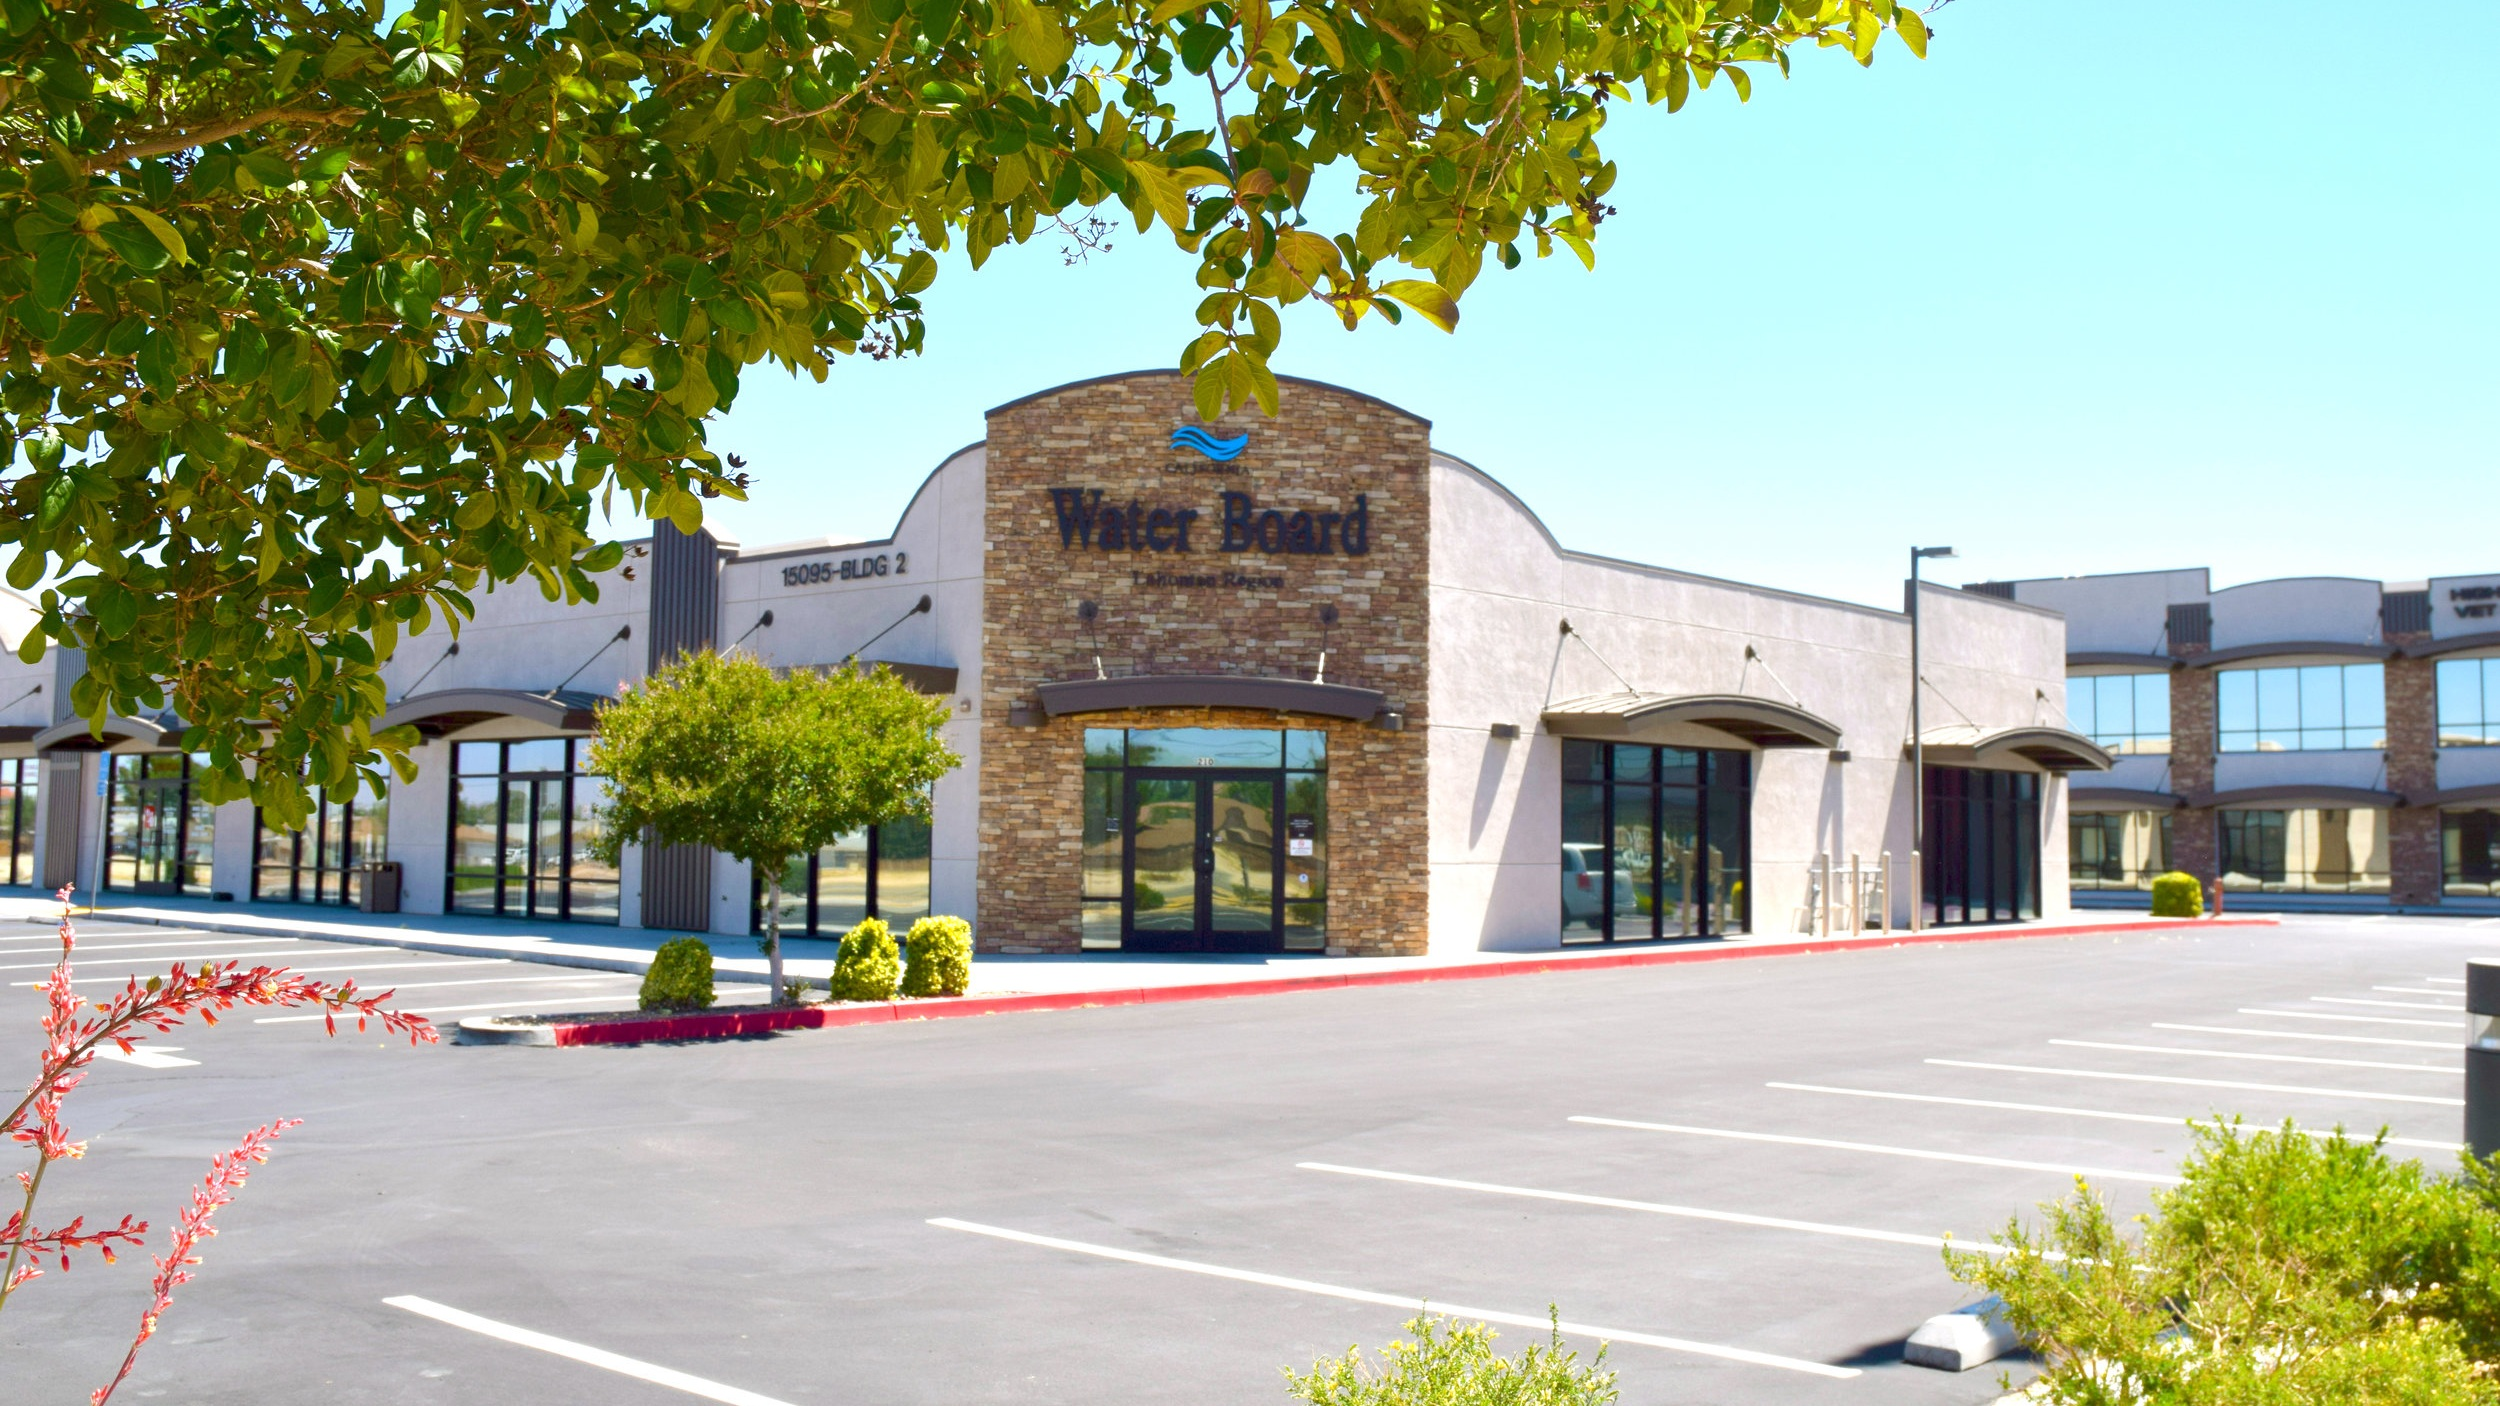 MIDTOWN SPECTRUM AND ANYTIME FITNESS